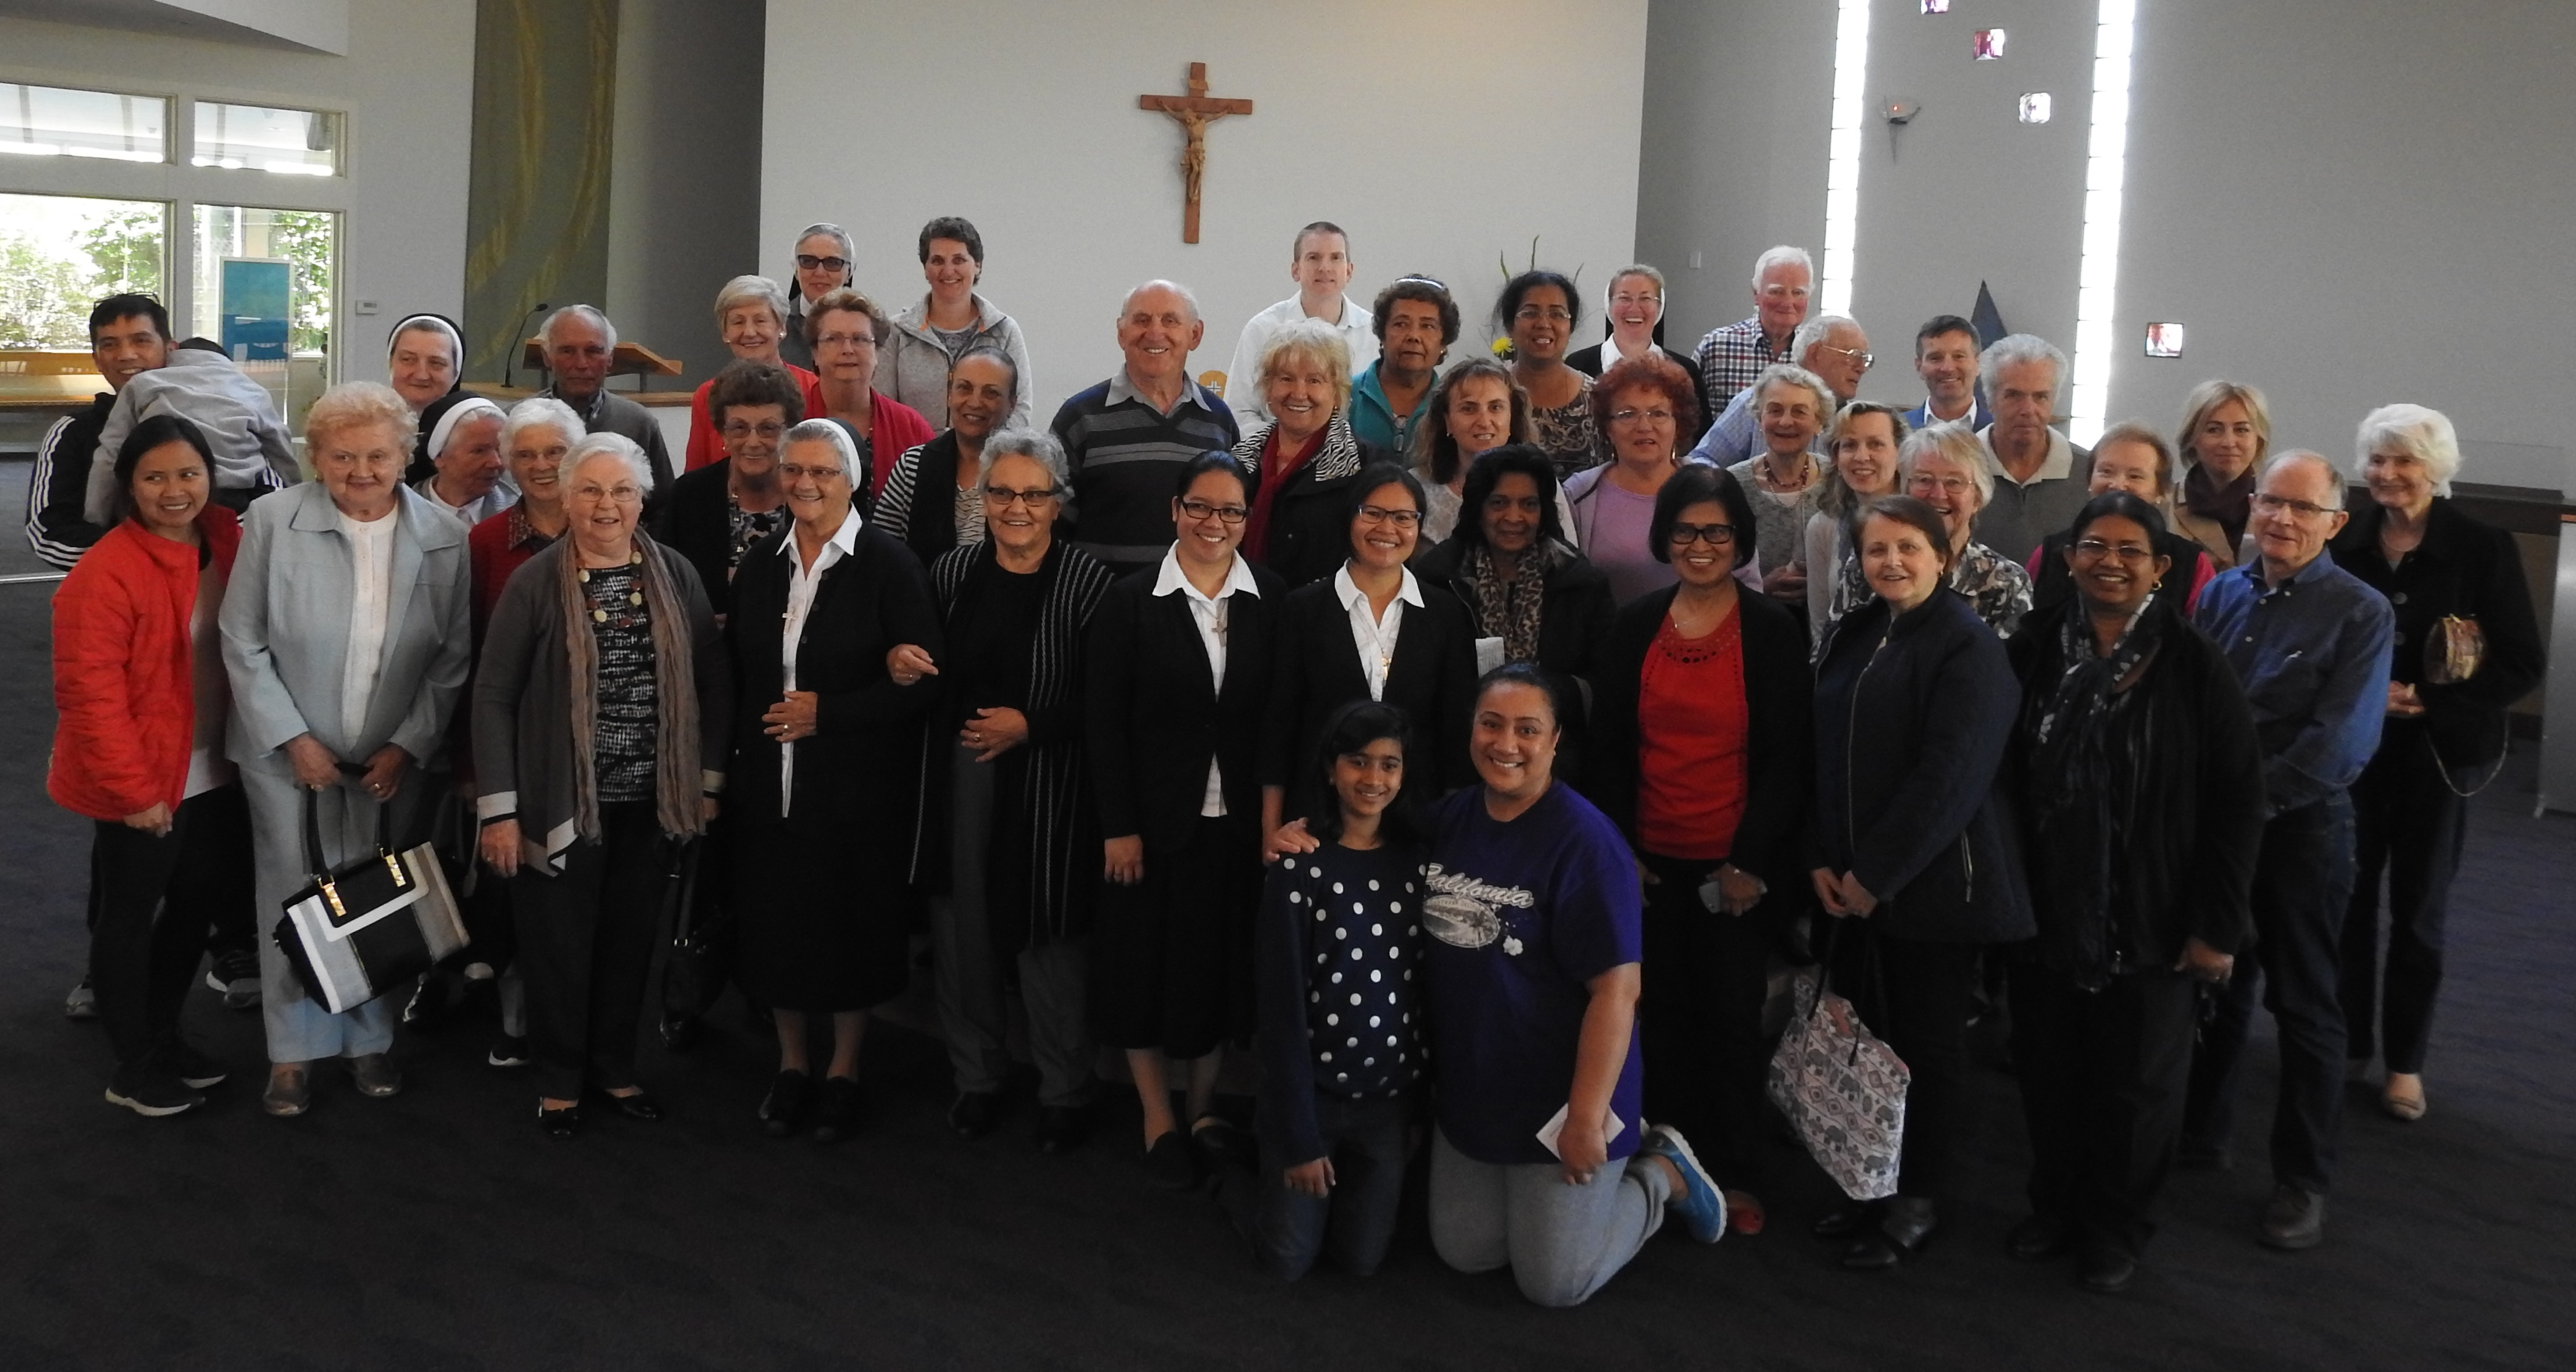 Celebrating 30th Anniversary of the Associates Gathering in Canberra